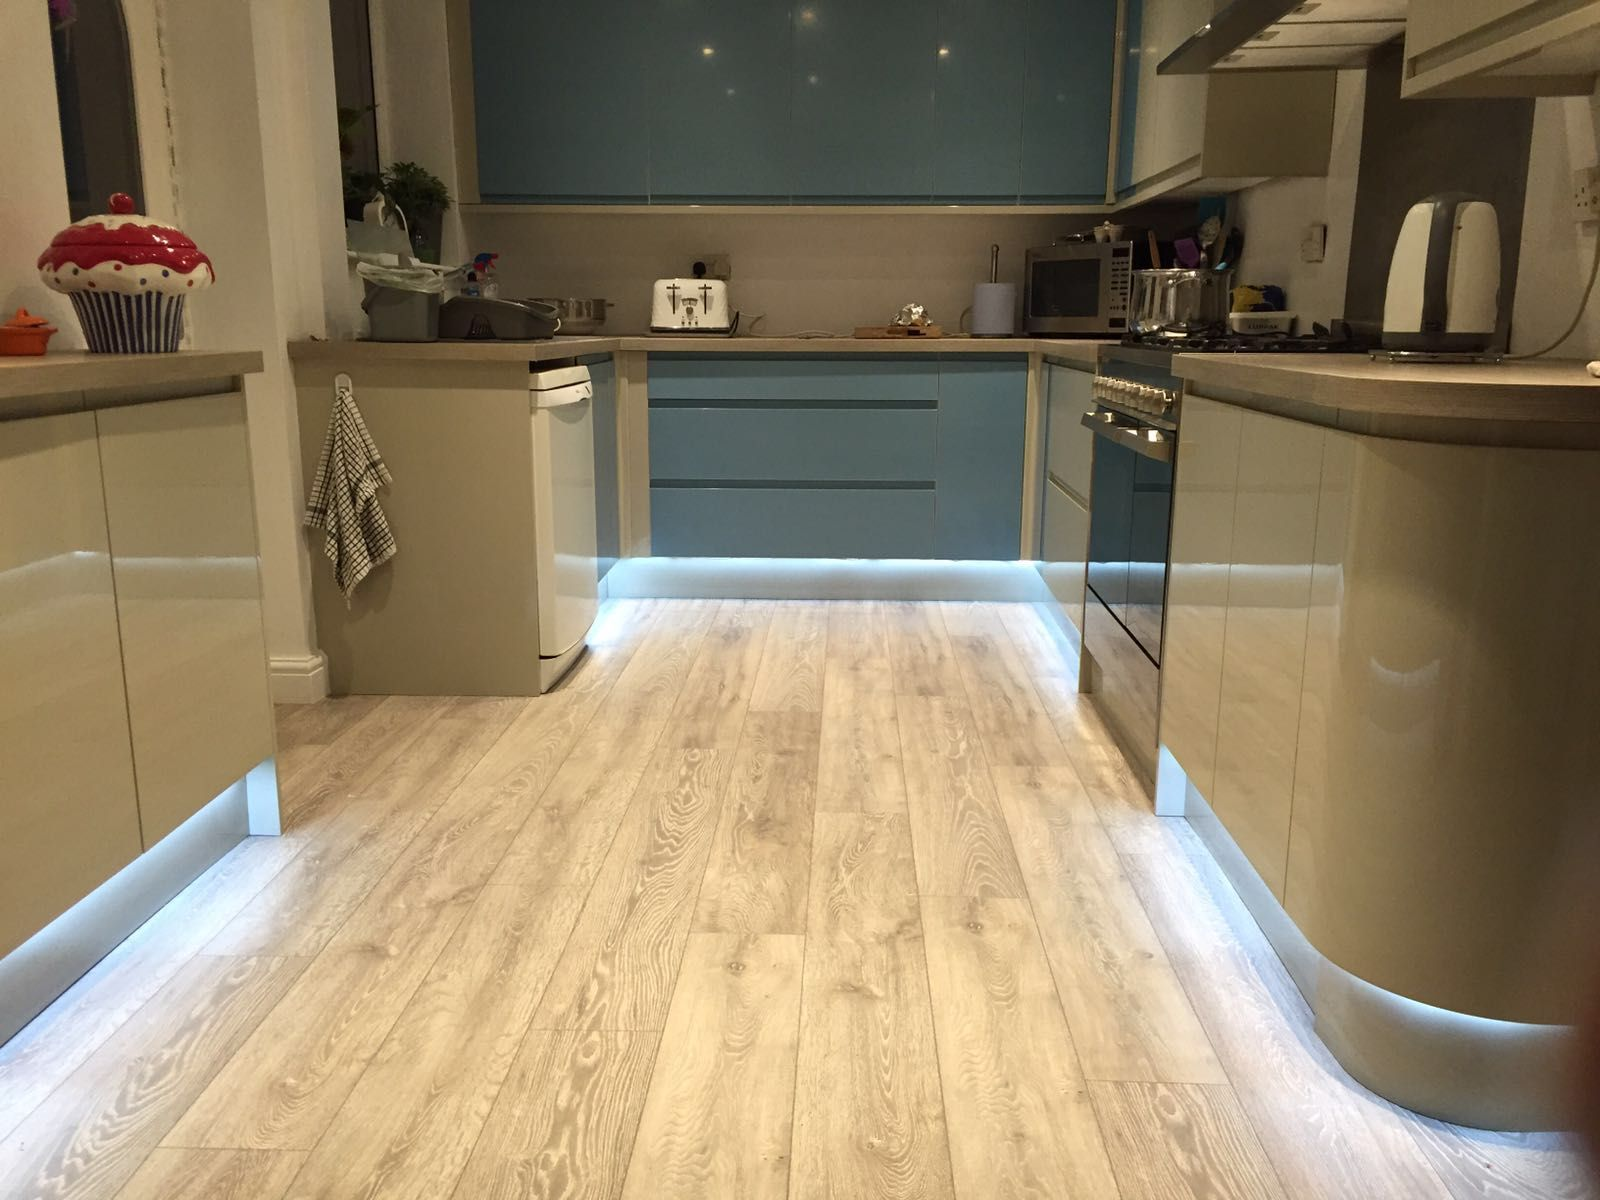 Cool white plinthkickboard lighting using our customisable cool white plinthkickboard lighting using our customisable tradestrip120 led strip lighting aloadofball Choice Image